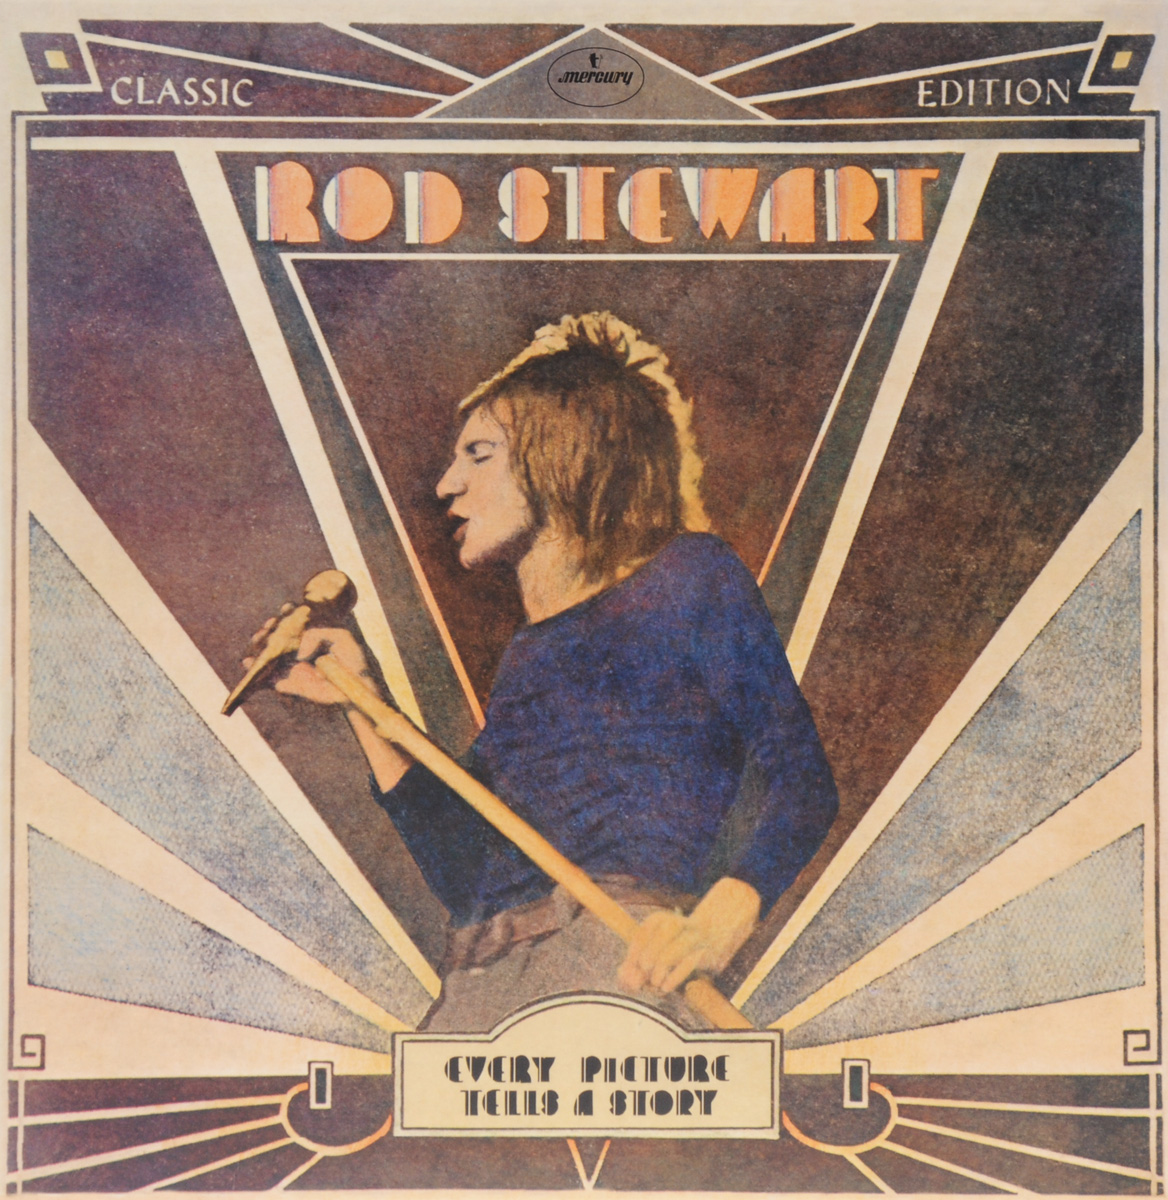 Род Стюарт Rod Stewart. Every Picture Tells A Story. Classic Edition (LP) виниловая пластинка rod stewart every picture tells a story